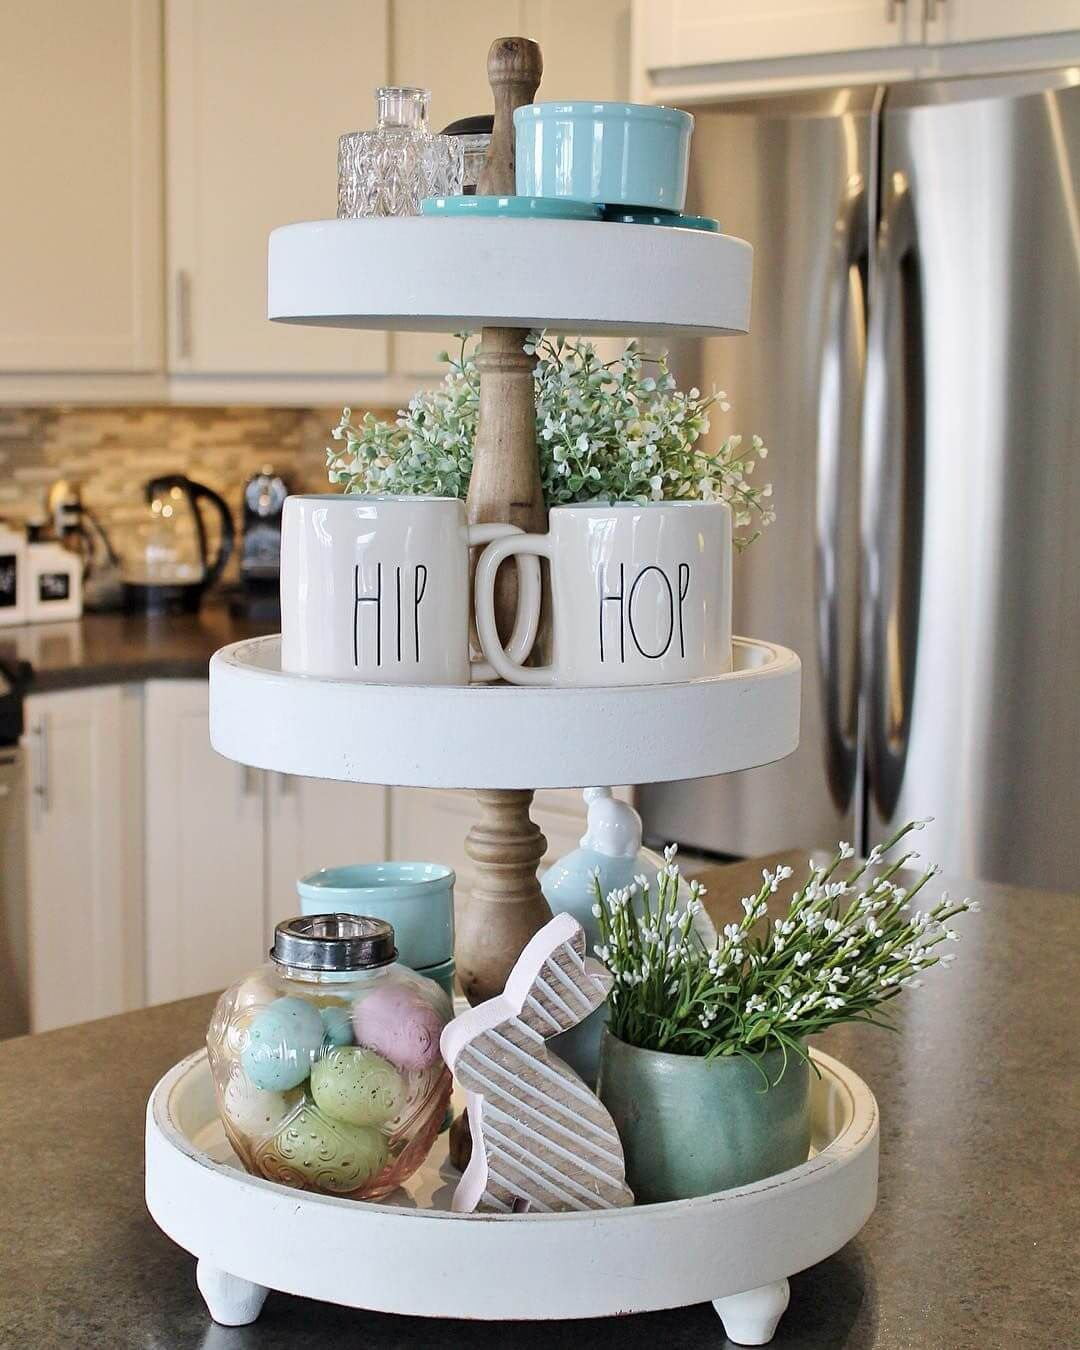 Spring Home Decor Design Ideas: Easter Themed Mugs With Baby's Breath